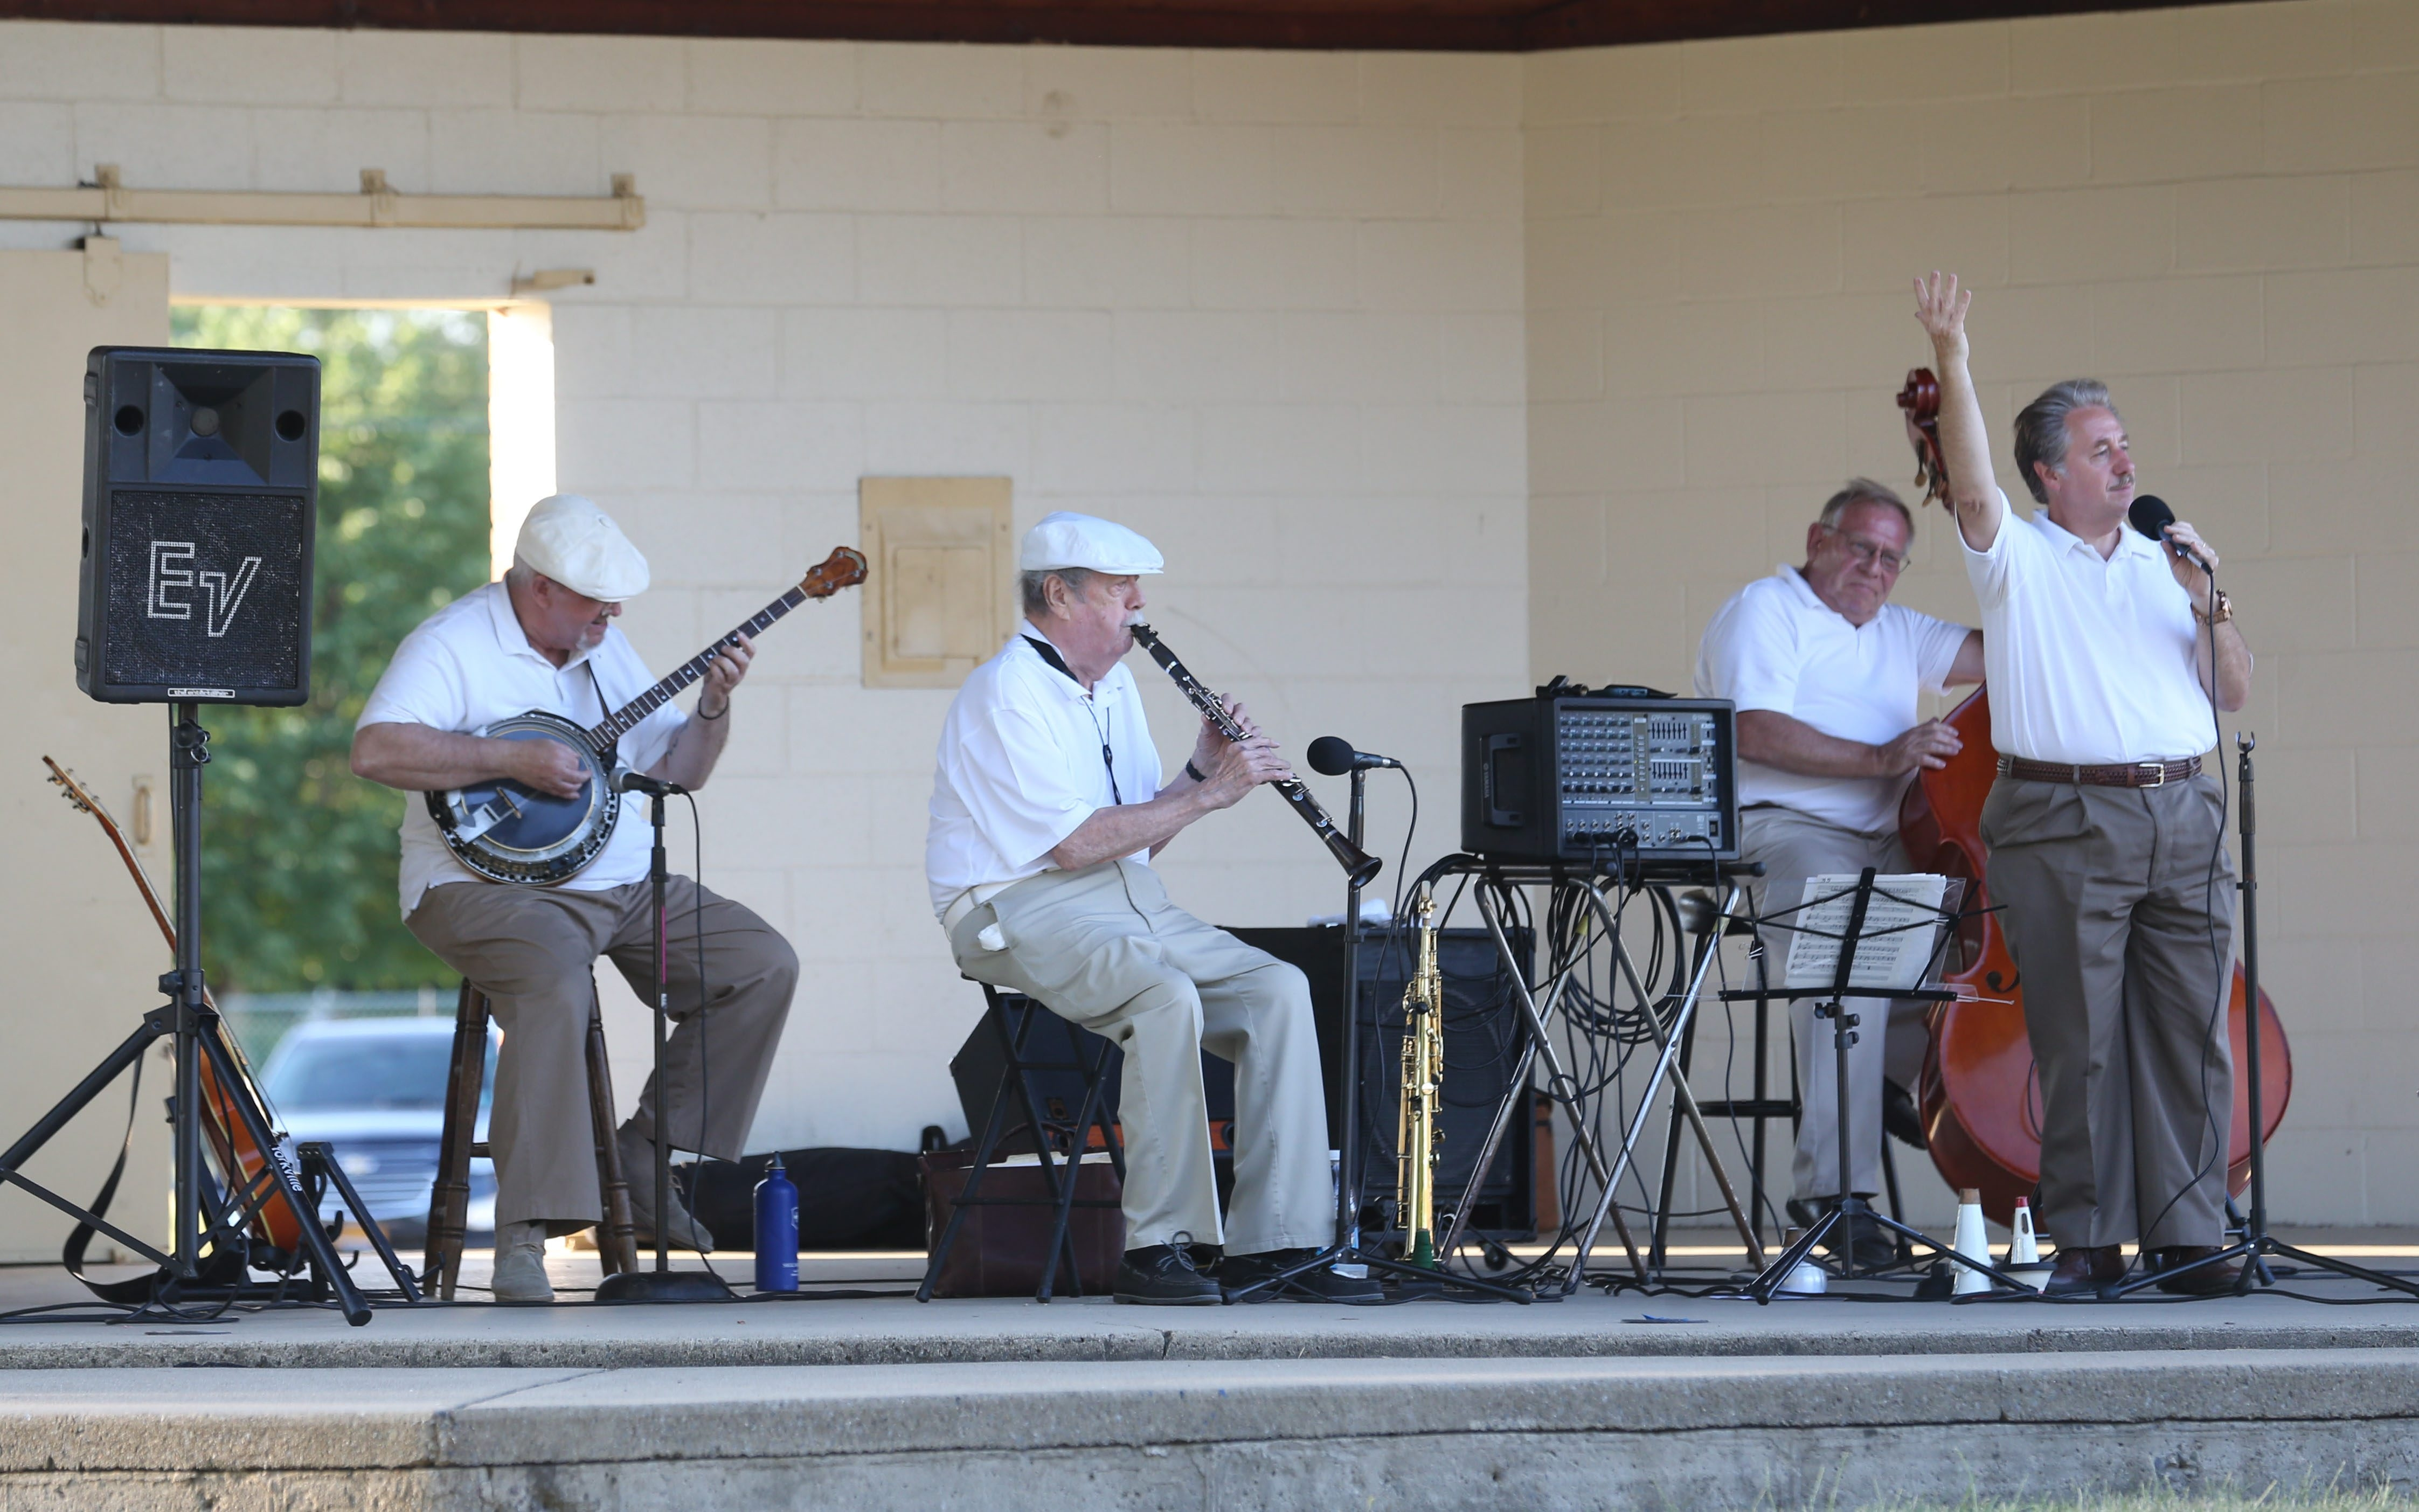 Bar-Room Buzzards, a traditional jazz band has been around for 50 years.  They've travelled all over the country. They're playing at West Seneca Lions Club's summer concert series, Monday, June 27, 2016. From left are Warren Stirtzinger, Paul Preston,  Paul Zapalowski and Lew Custode.  (Sharon Cantillon/Buffalo News)